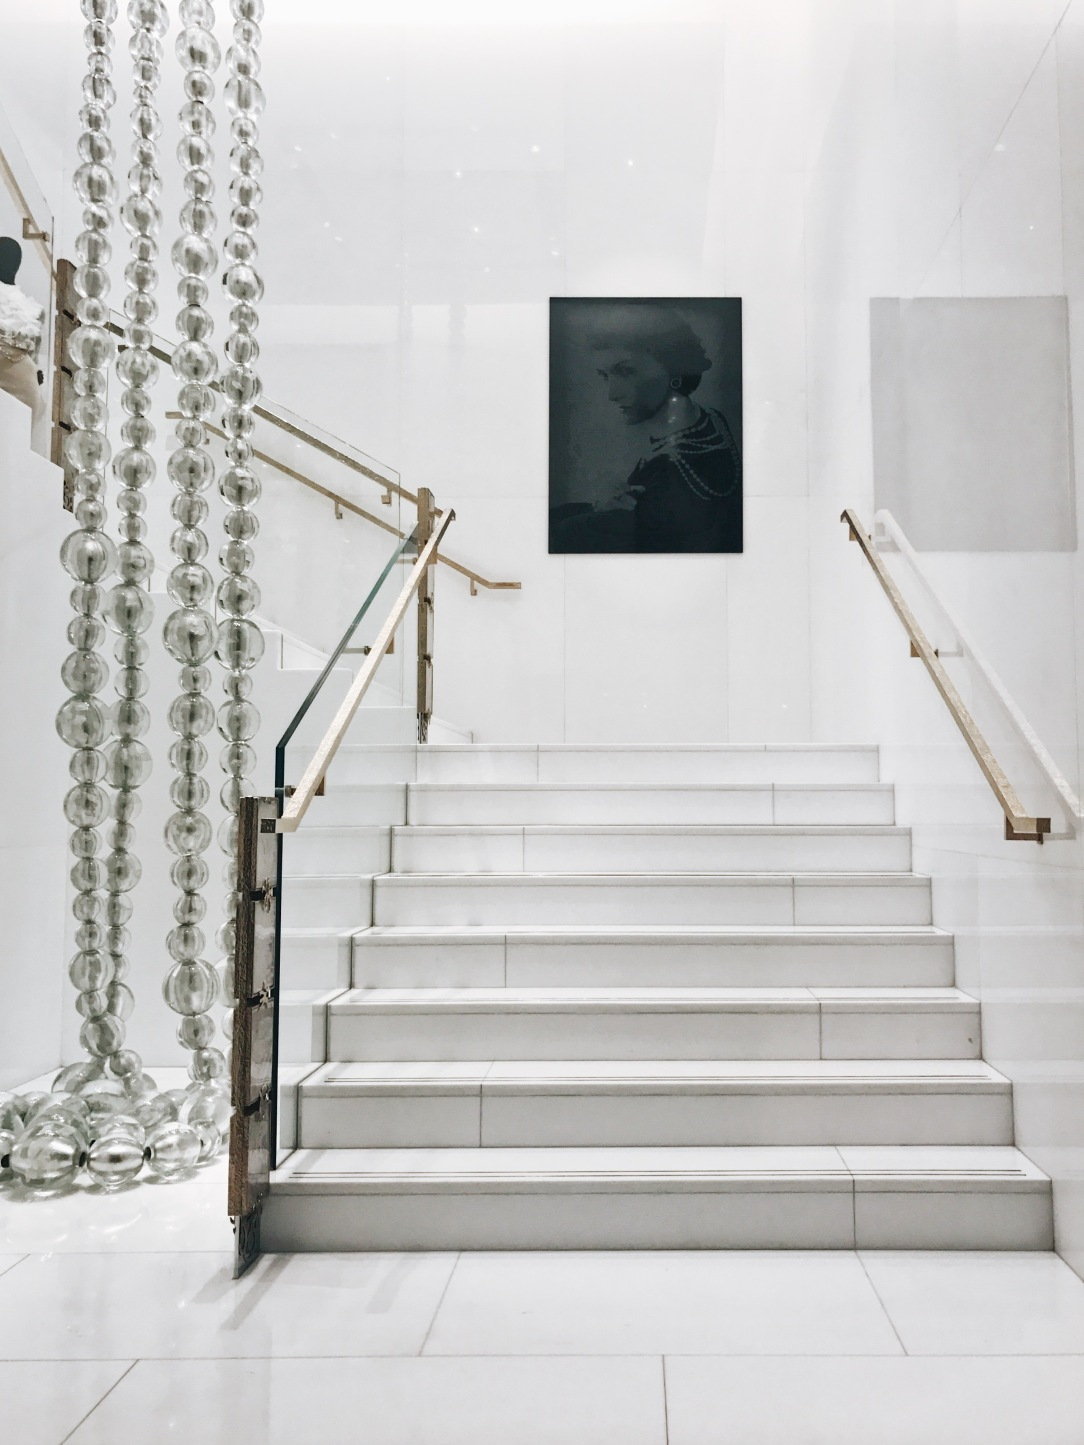 Coco Chanel Staircase in Paris | CoffeeAndHandbags.com